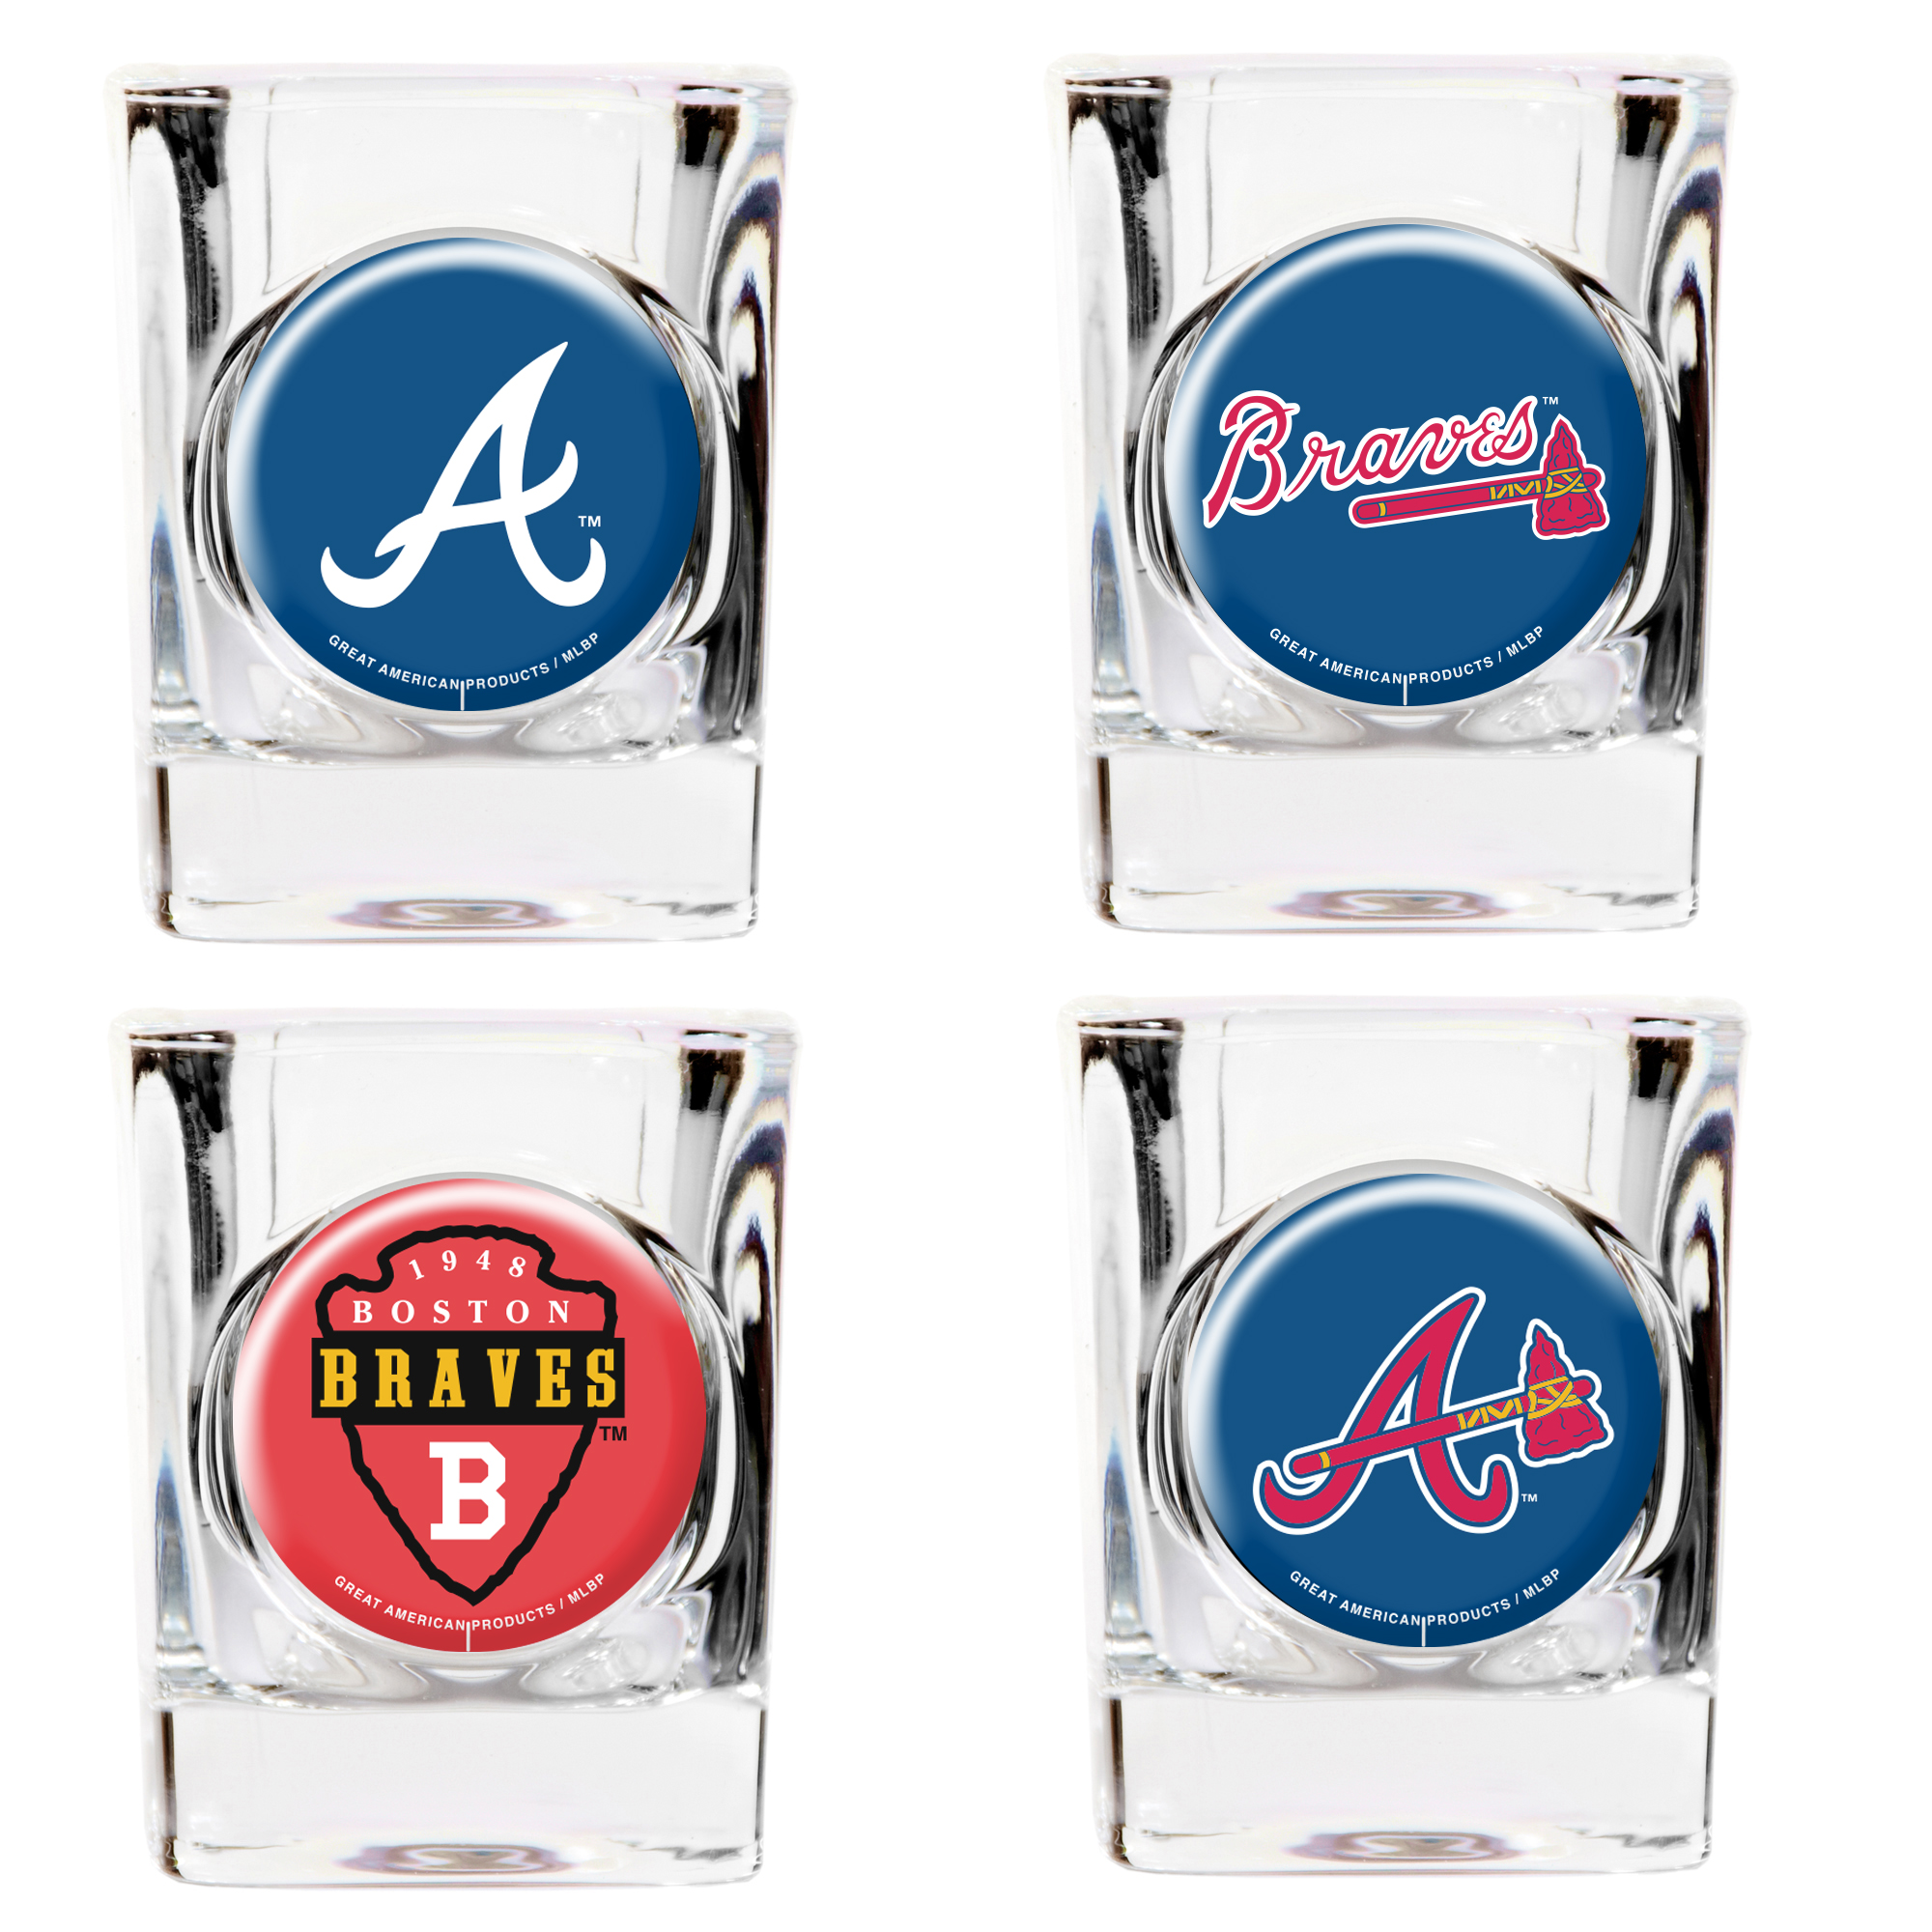 Atlanta Braves 4-Piece 2oz. Square Shot Glass Set - No Size